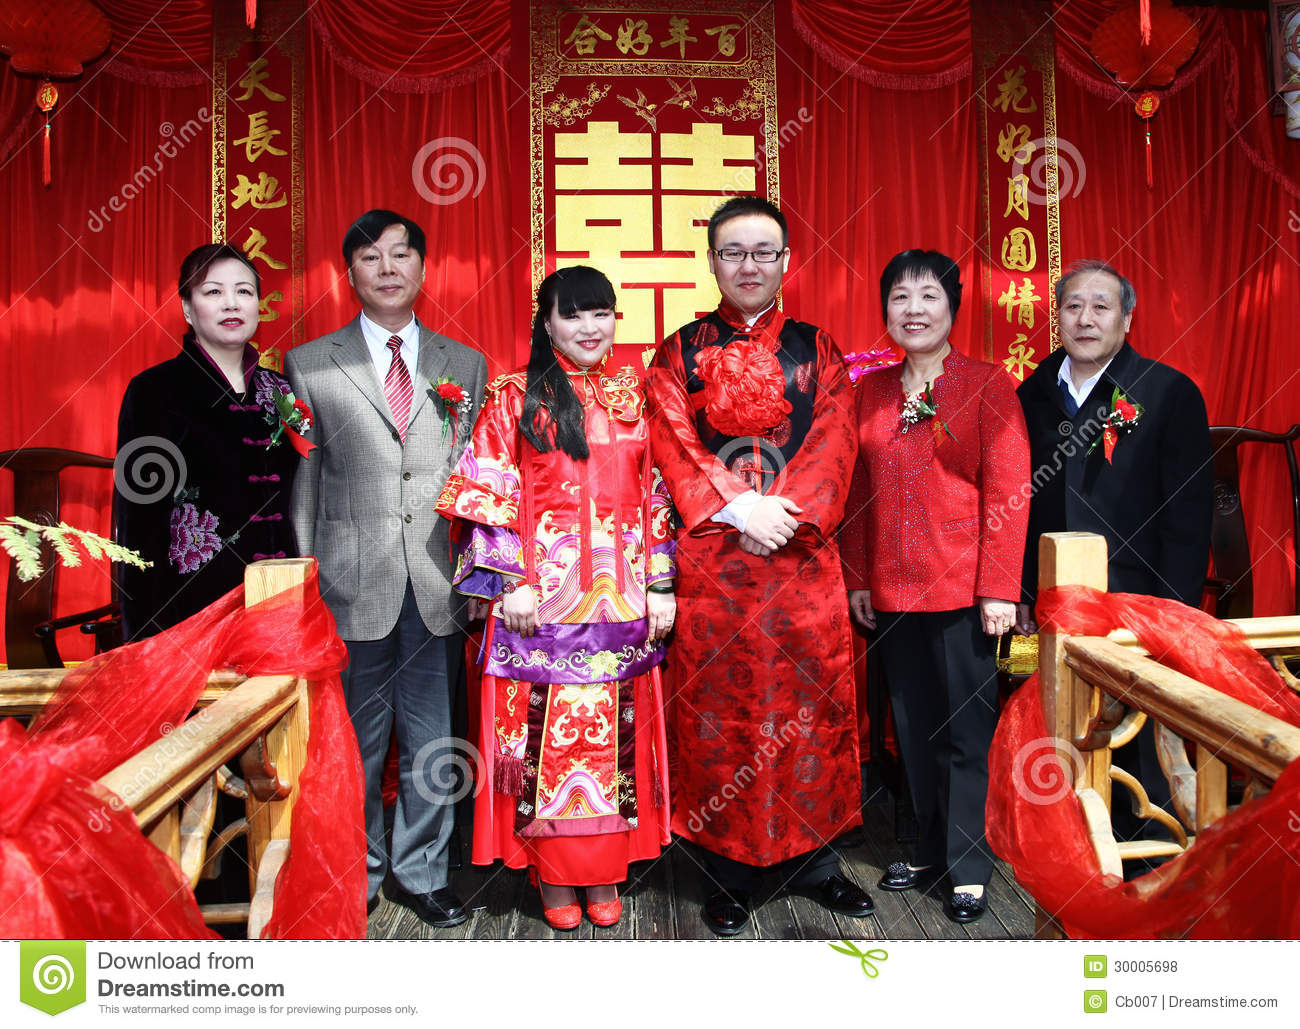 Traditional chinese wedding in beijing